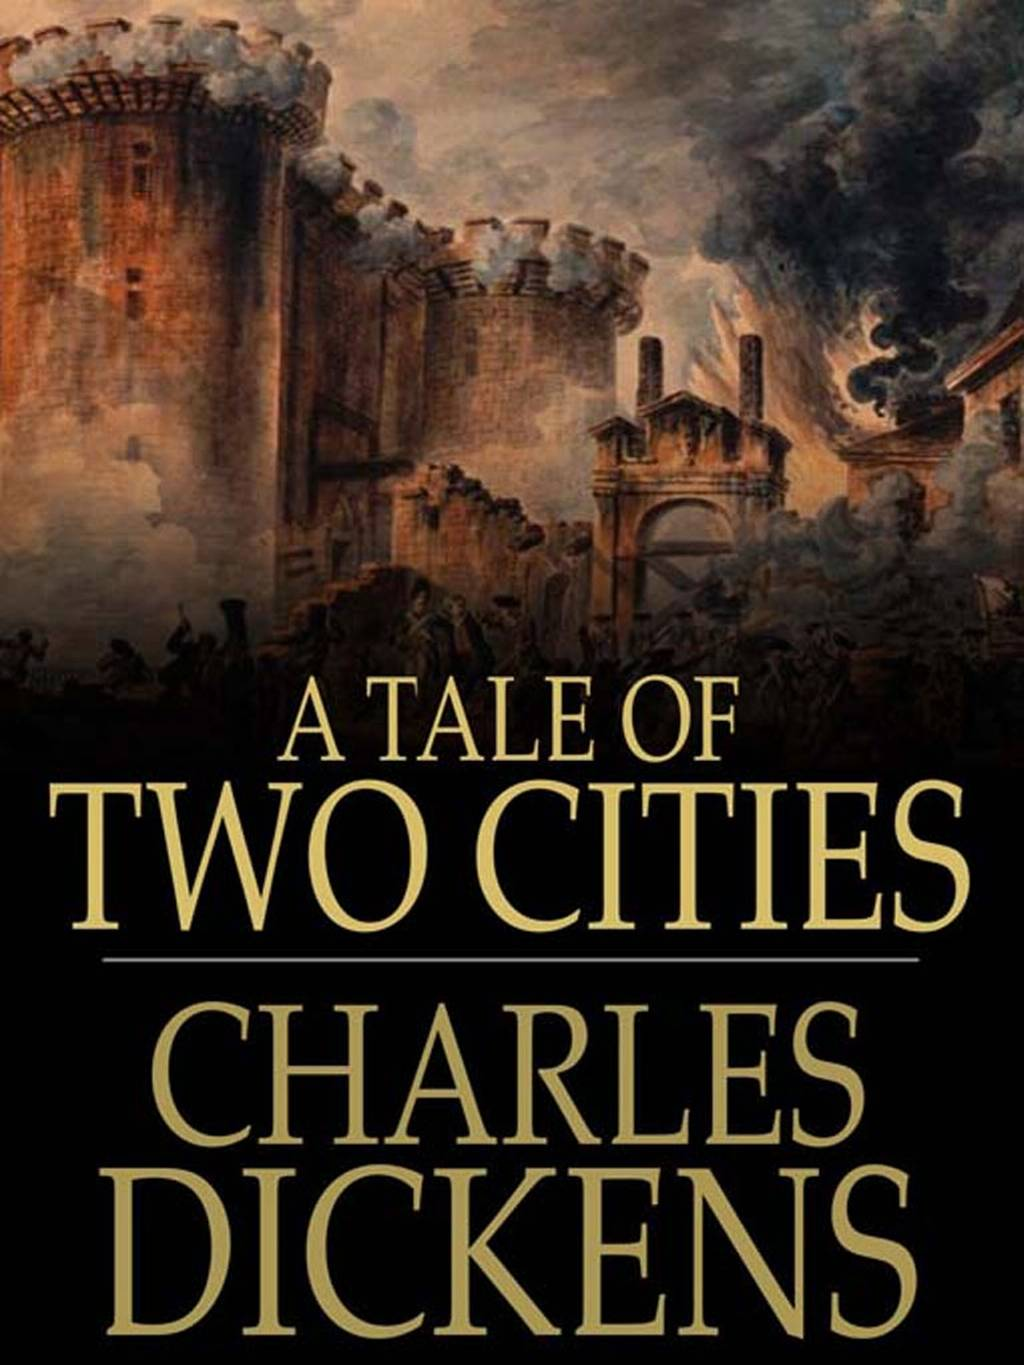 A Tale of Two Cities by Charles Dickens - Free Ebook